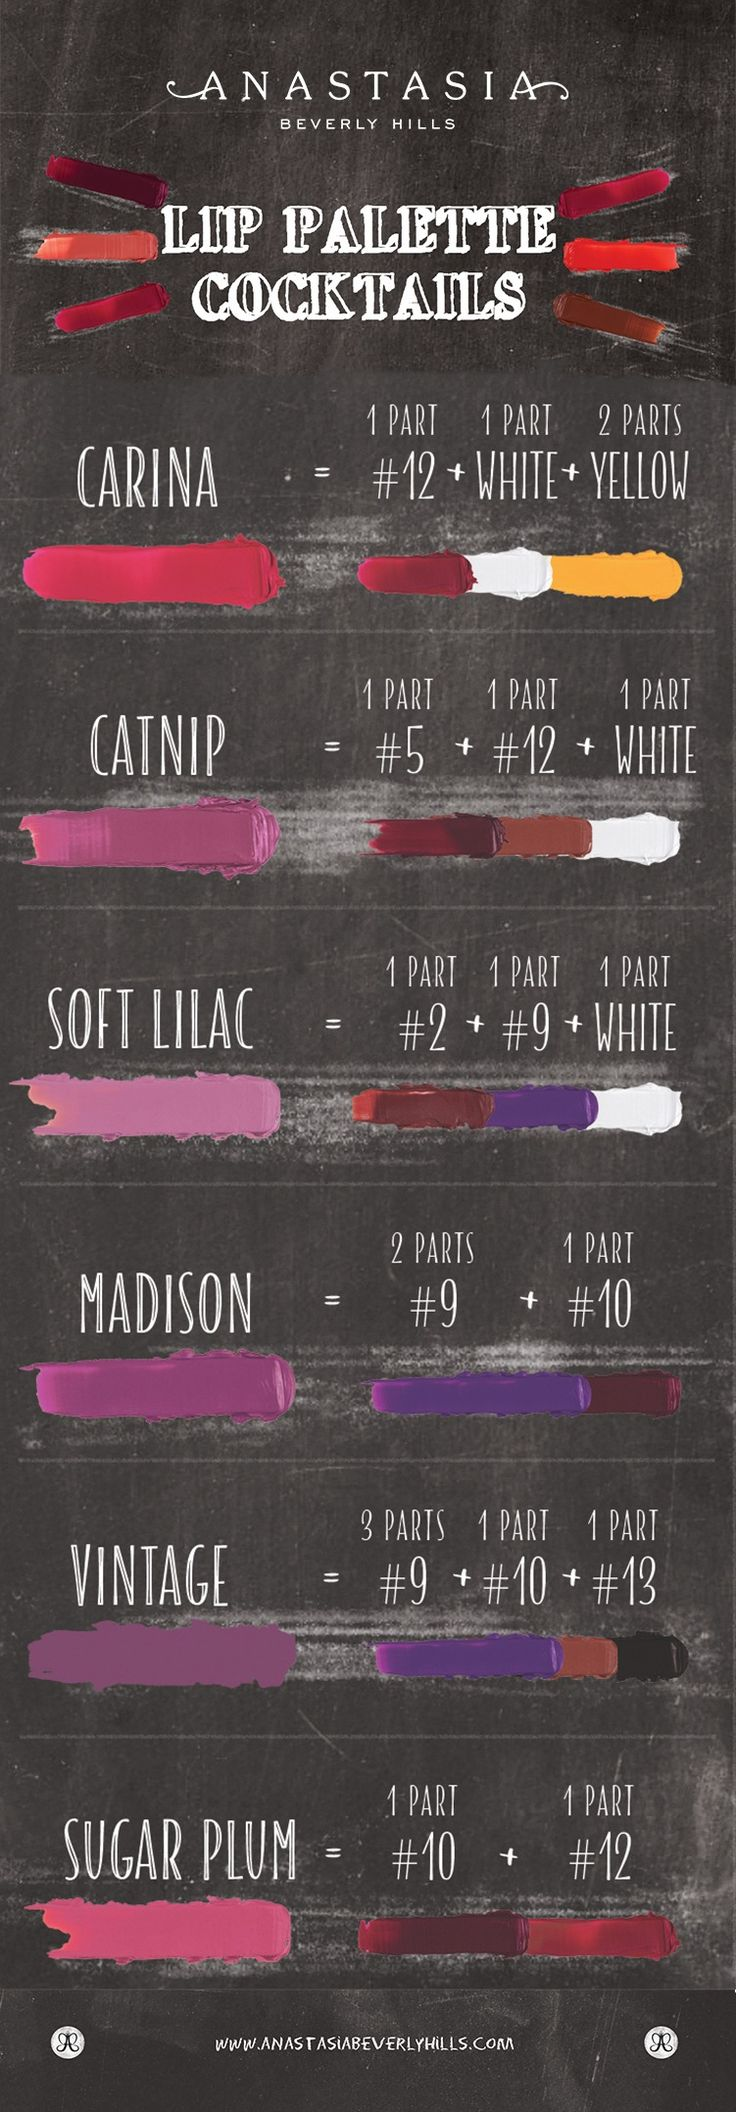 The Anastasia Beverly Hills Lip Palette gives you 18 different shades with endless possibilities to mix and customize your own shades! Come up with your own or use one of our cheat sheets!